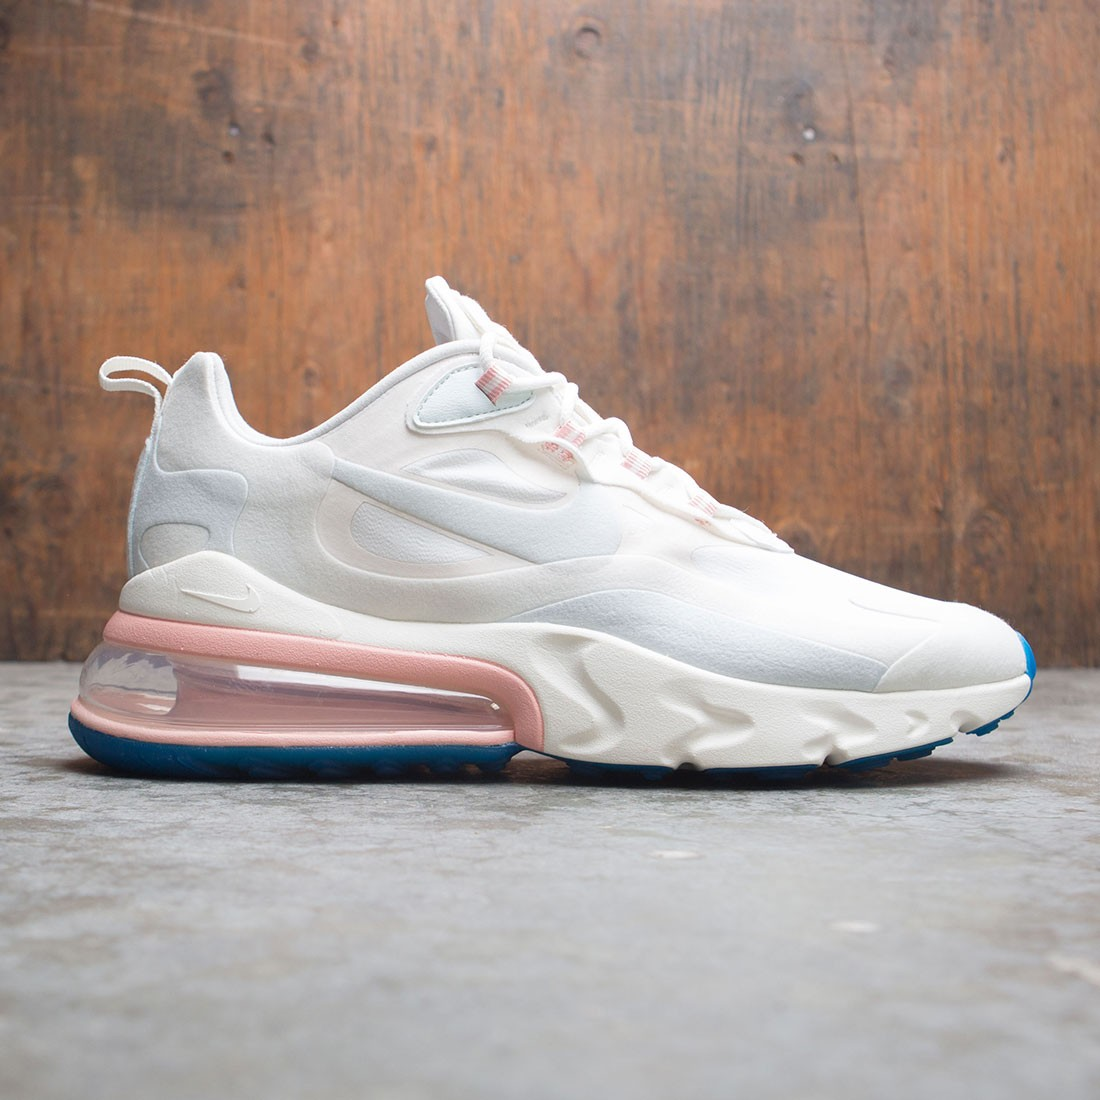 release date bf0bf 88479 Nike Men Air Max 270 React (summit white / ghost aqua-phantom)